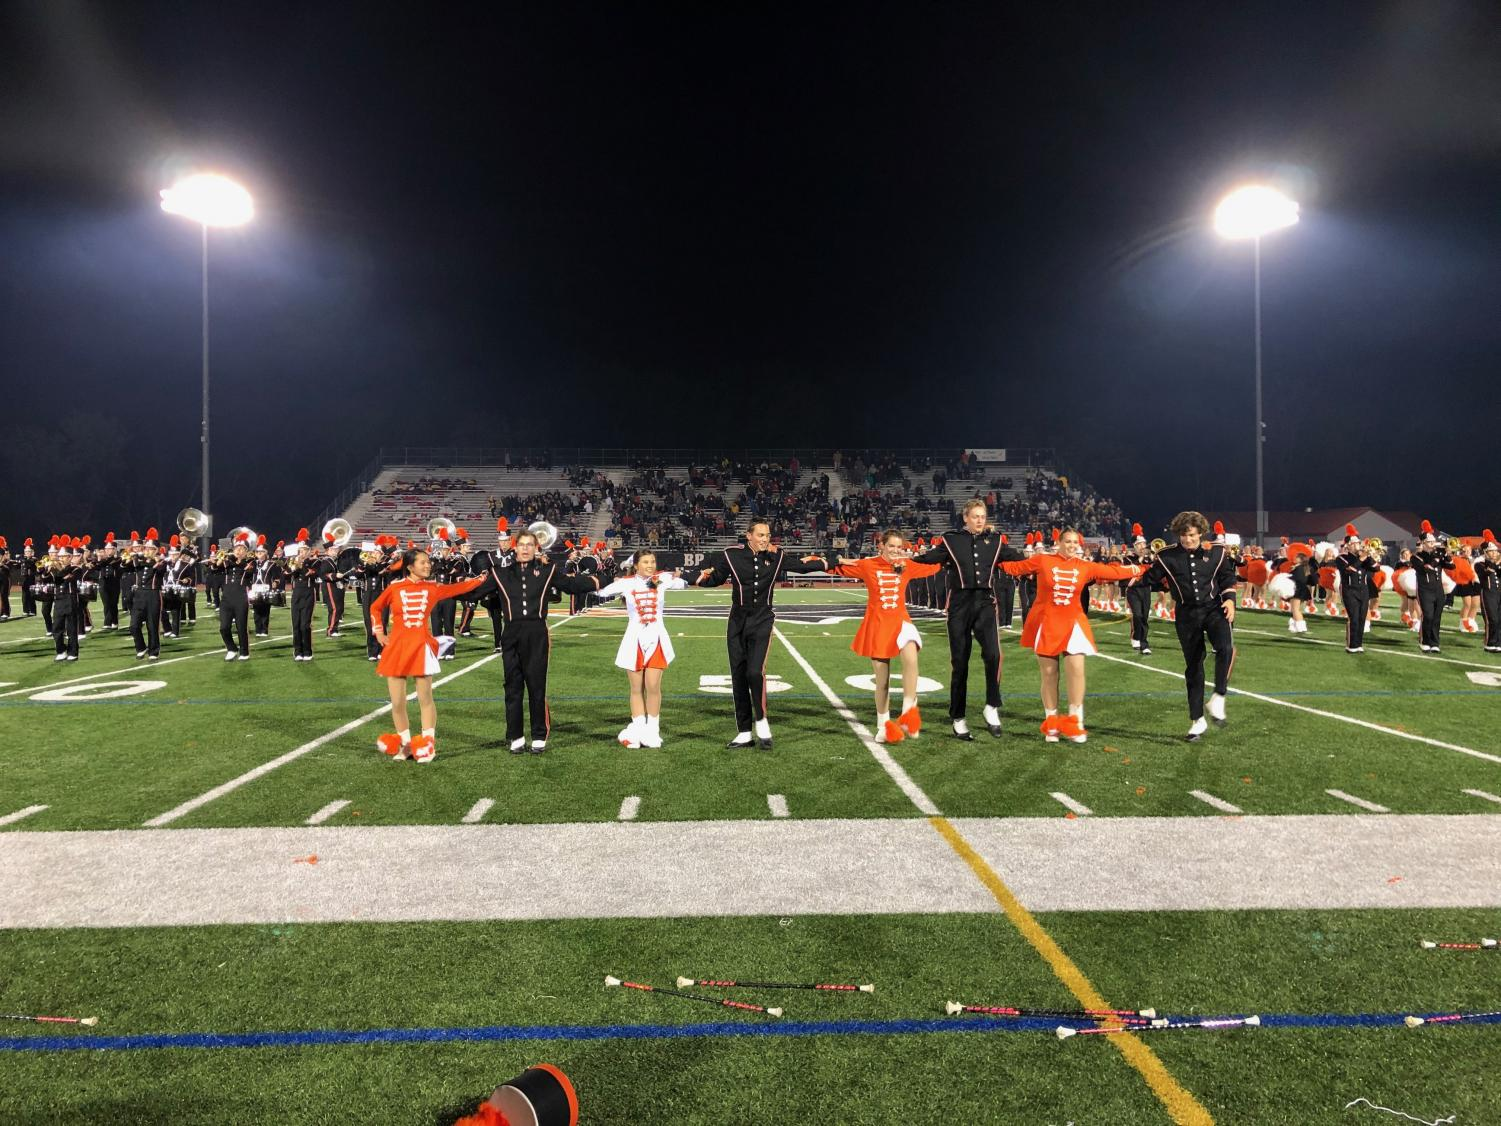 Bethel Park Majorettes and senior marching band members perform their own routine for Senior Night.